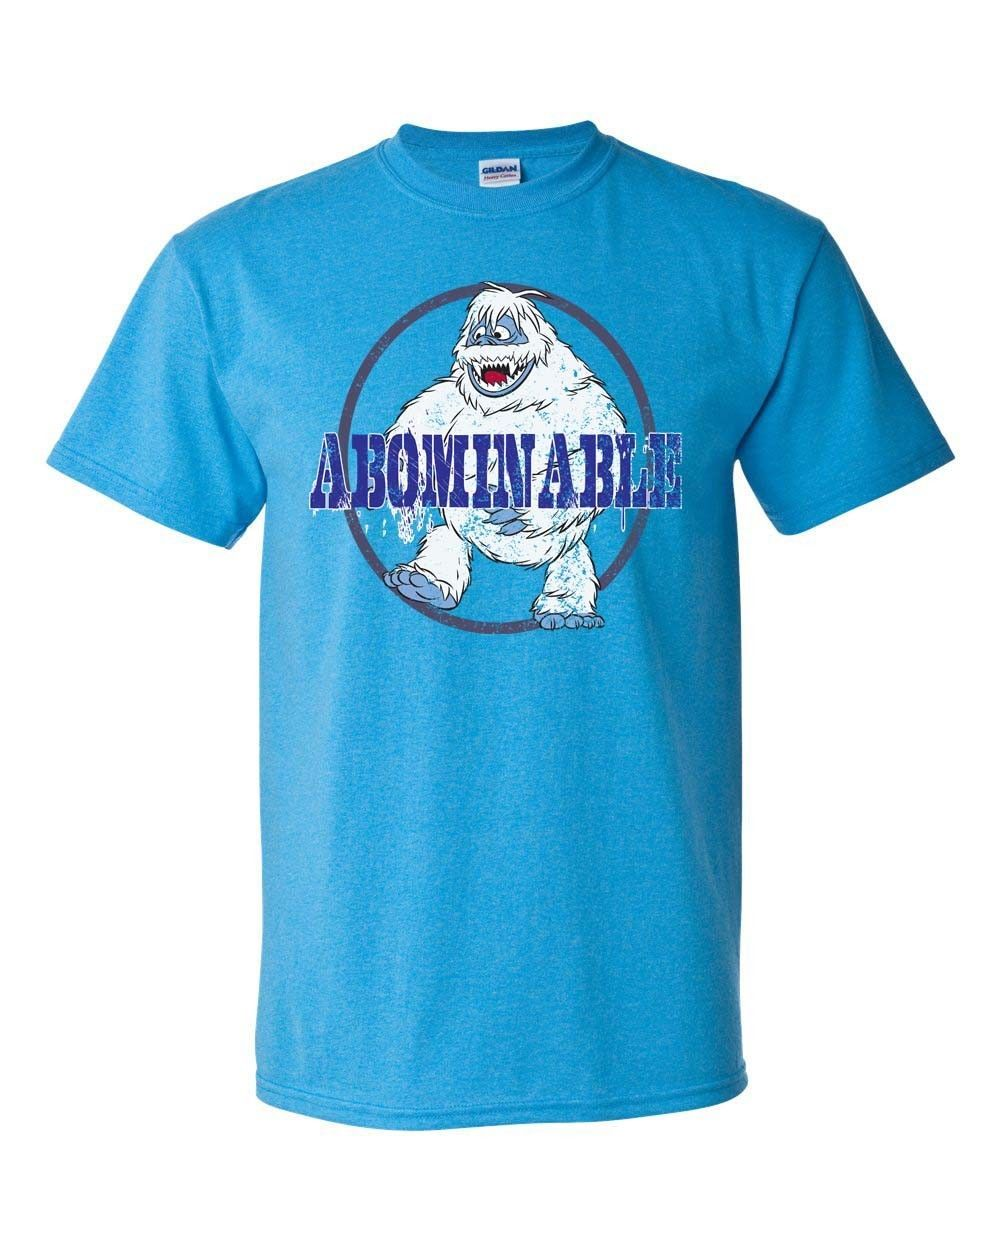 Abominable Snowman T-shirt retro 70s 80s Christmas special graphic blue tee